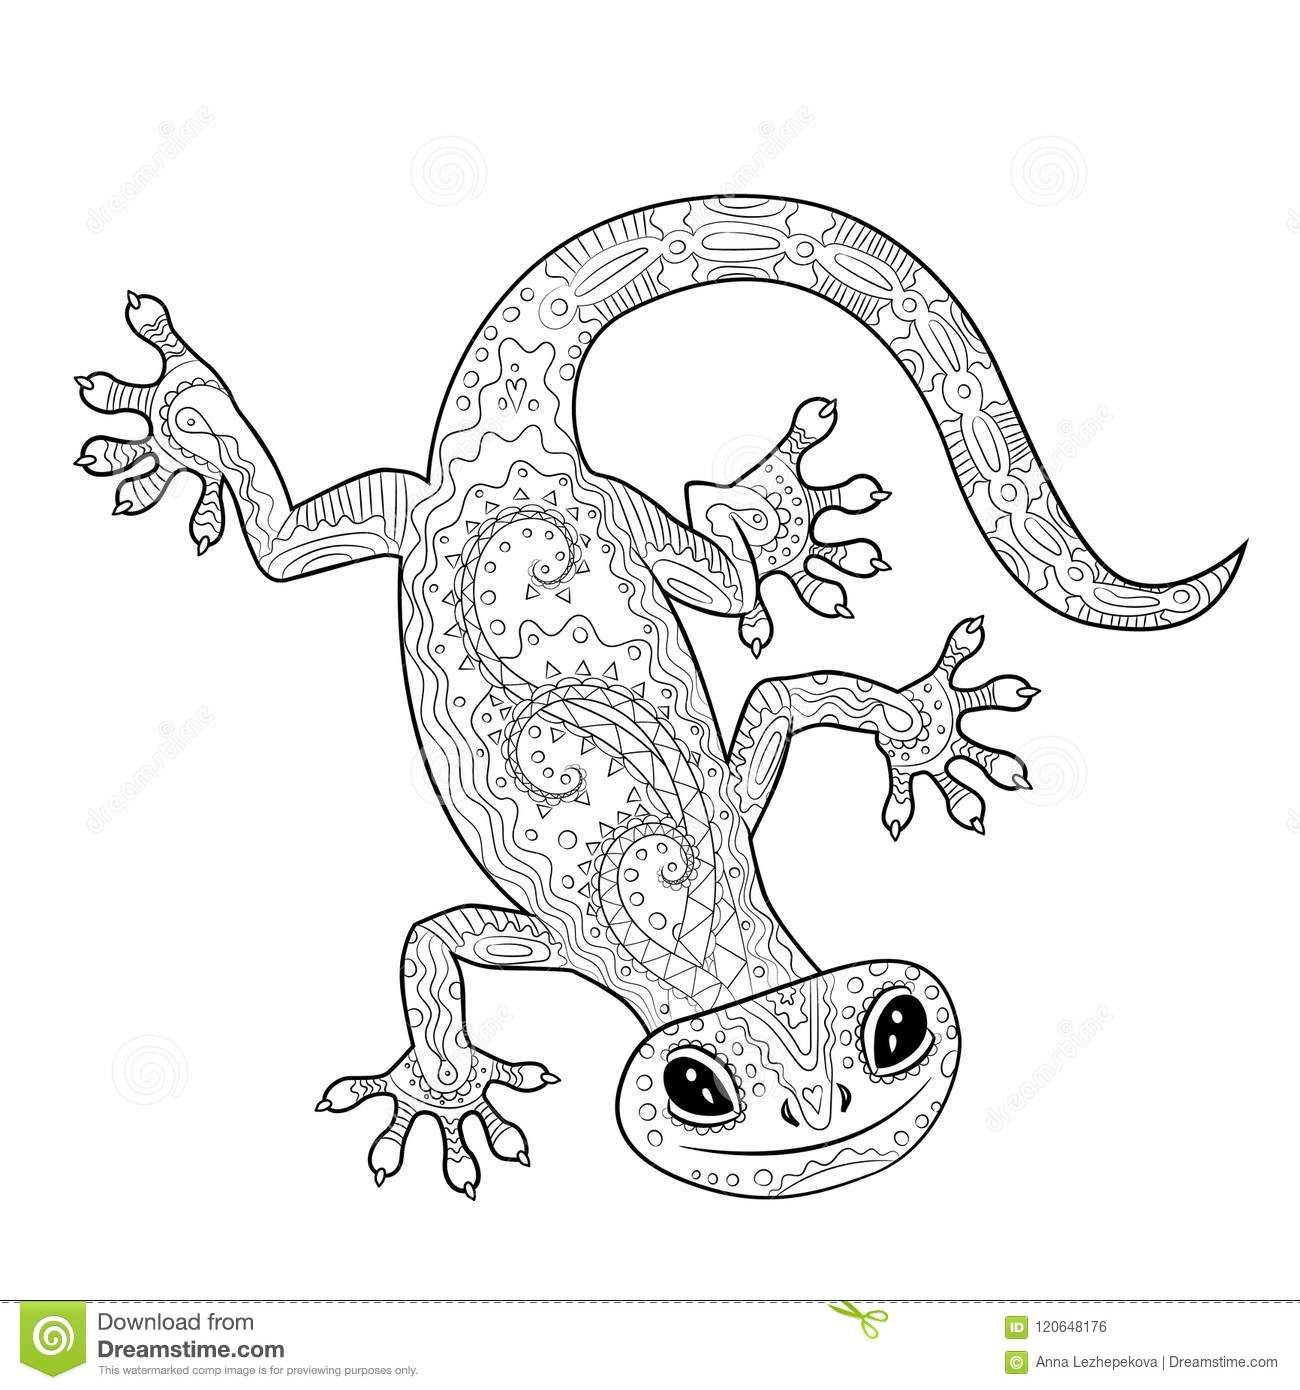 Coloring Page With Gecko In Patterned Style Stock Vector